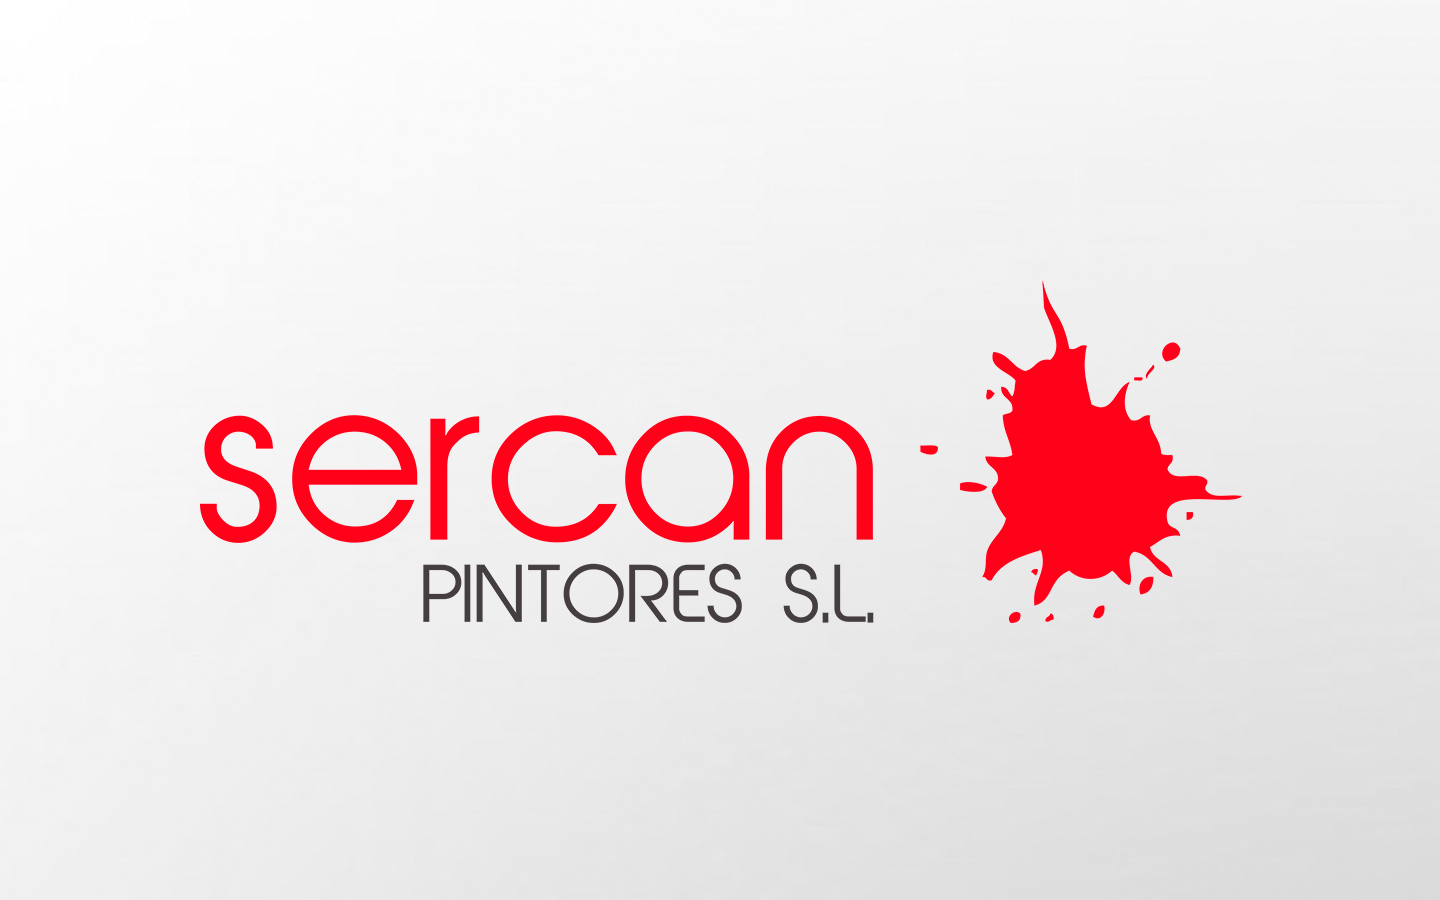 Sercan Pintores S.L.